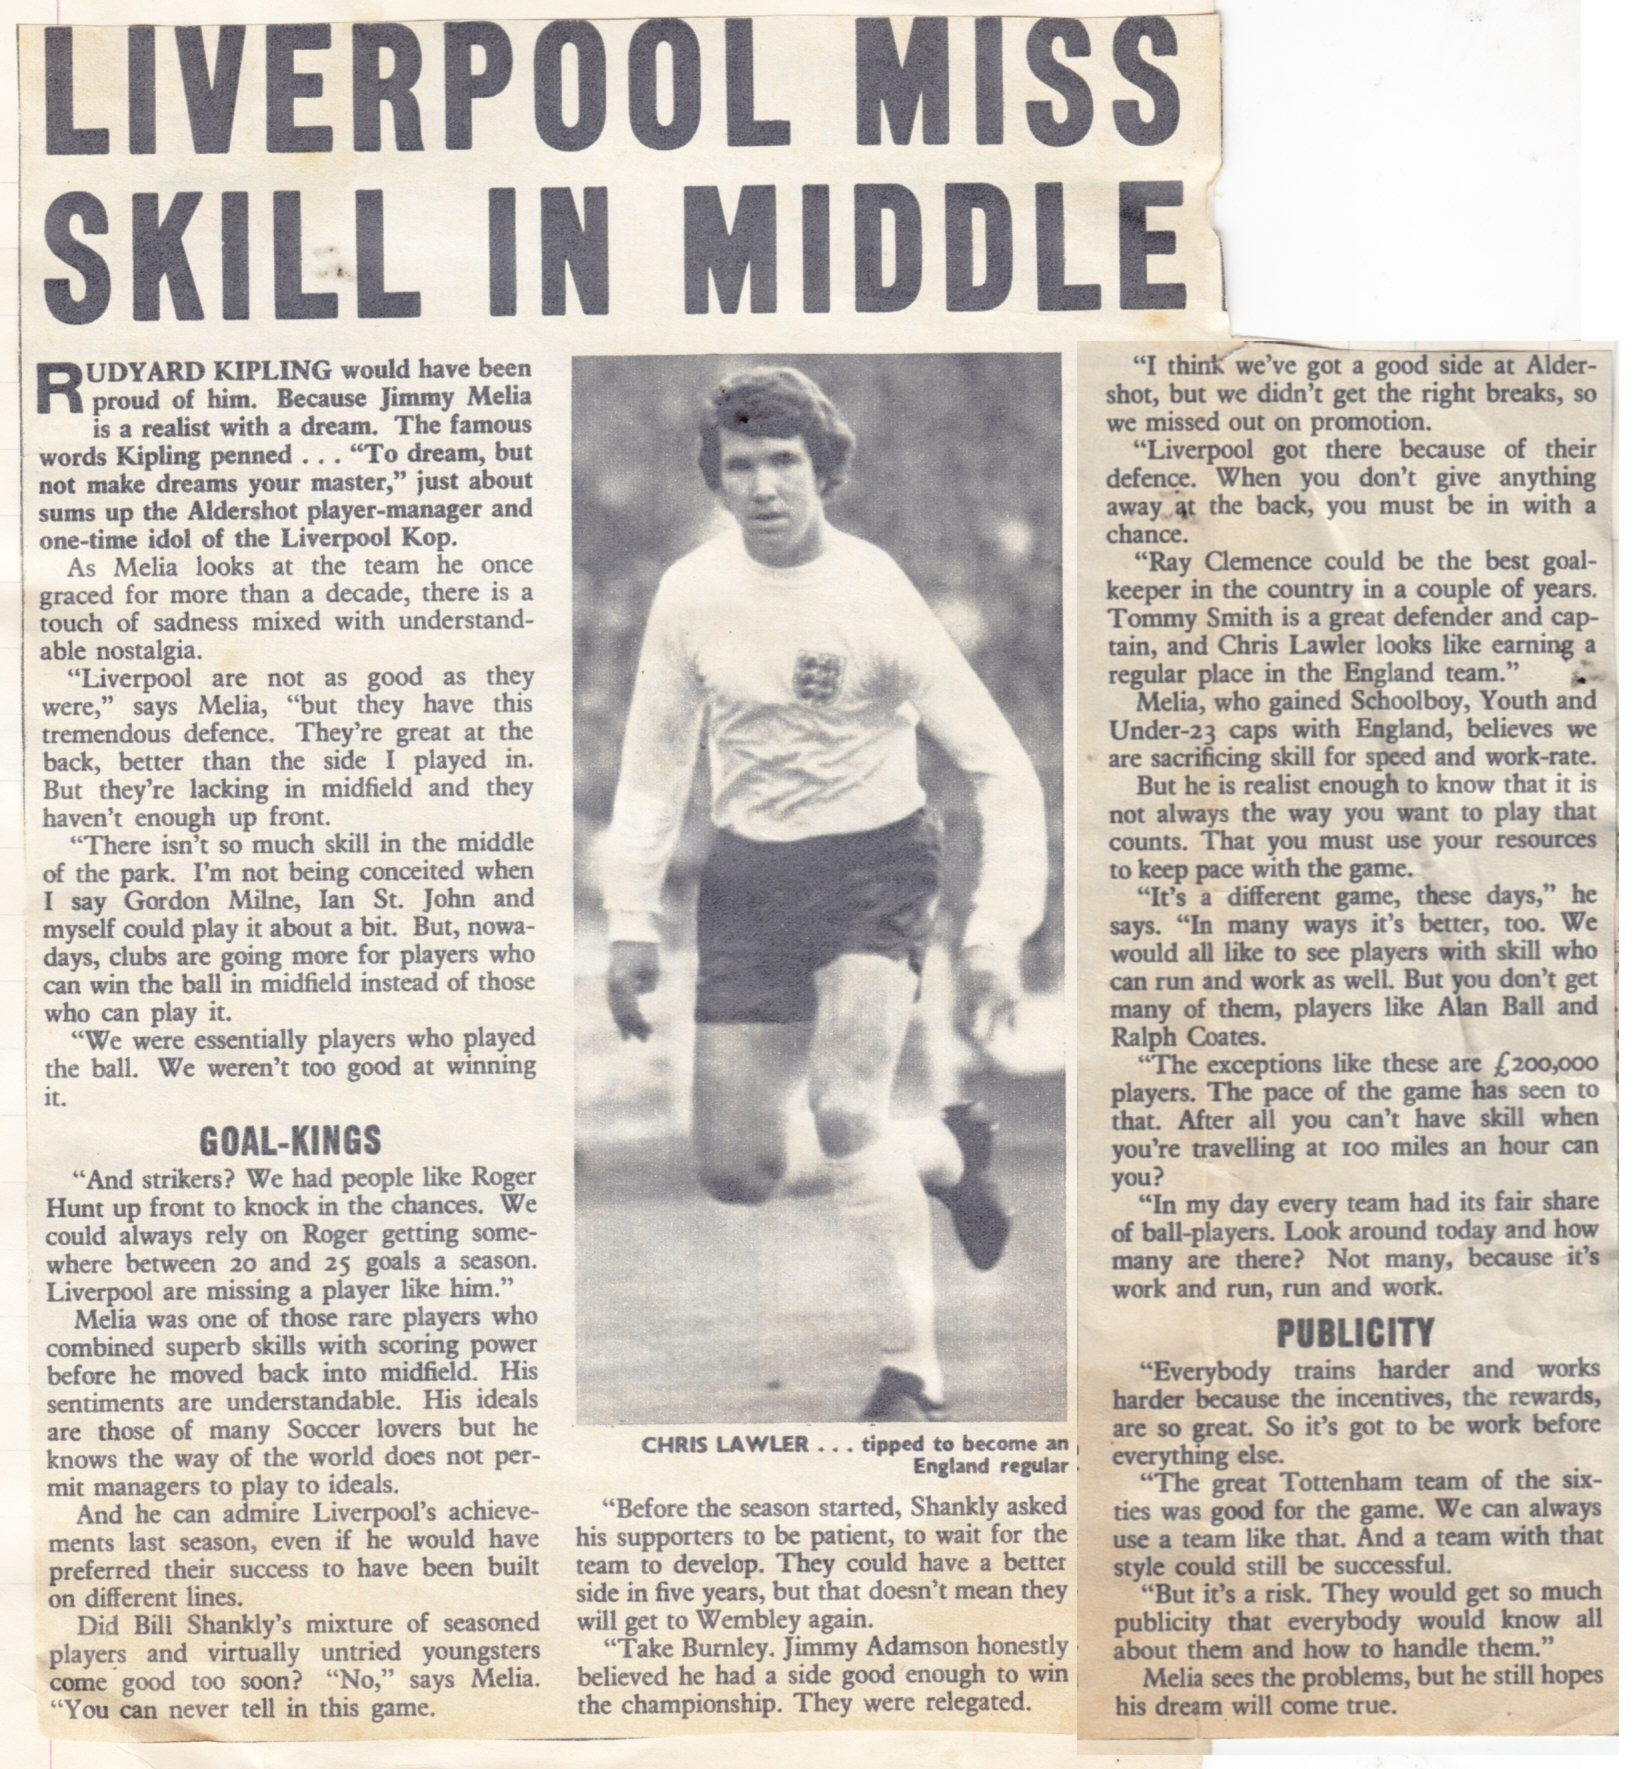 Liverpool miss skill in the middle, says Melia in 1971